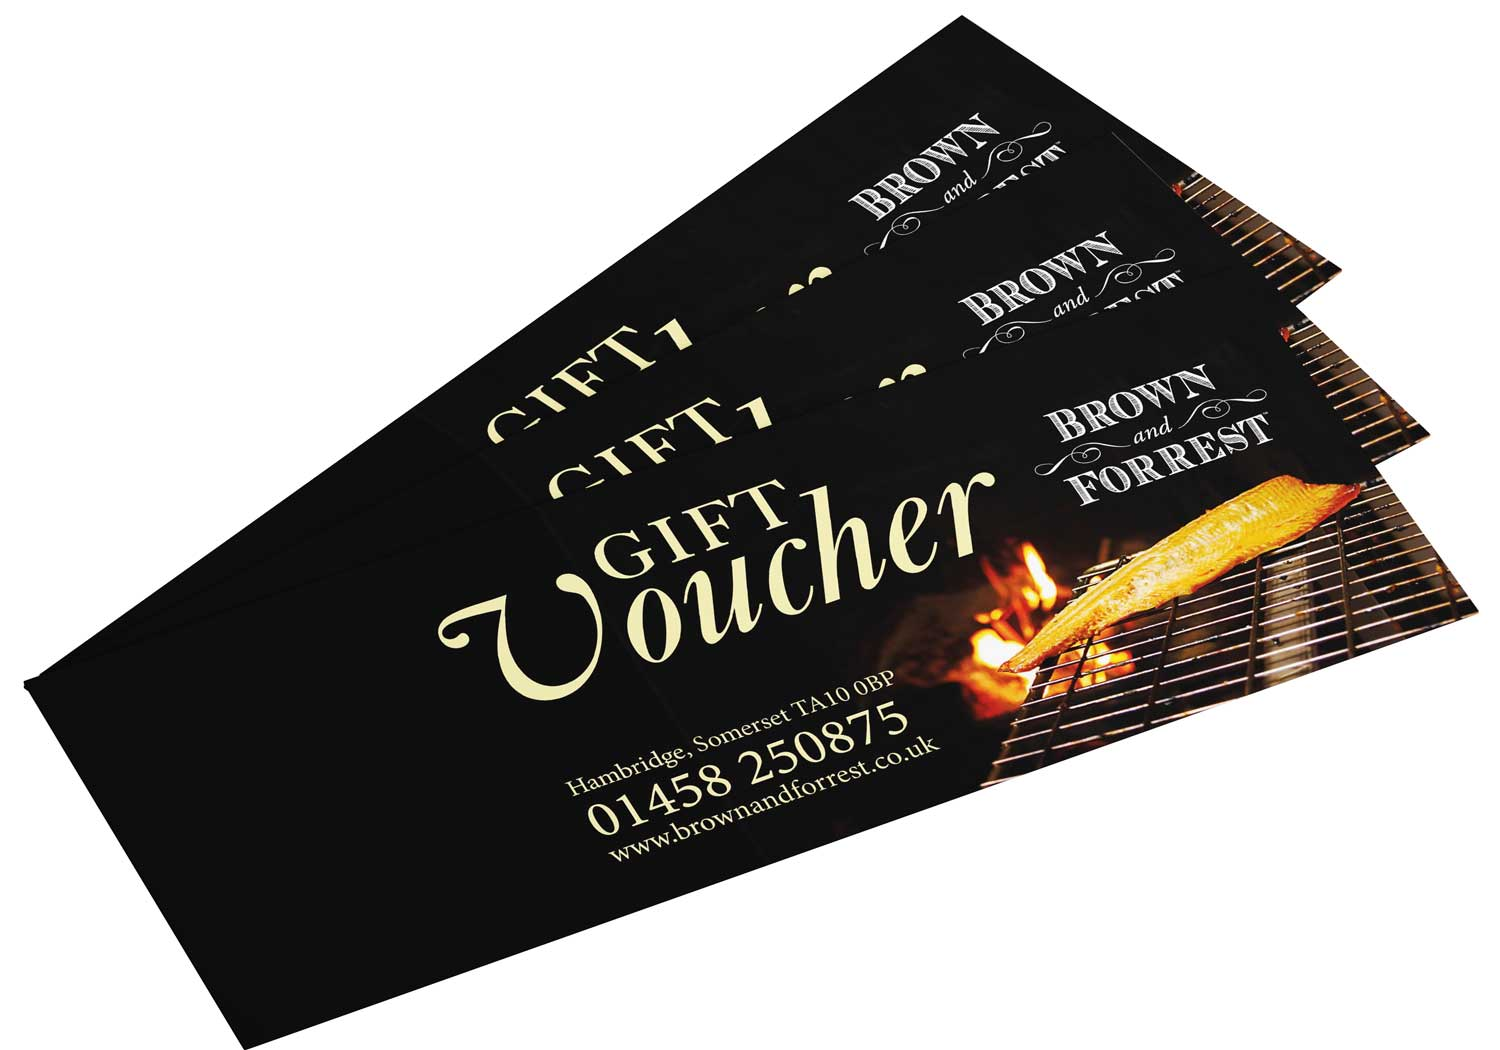 Brown and Forrest Gift Vouchers for smoked meats, fish & cheese